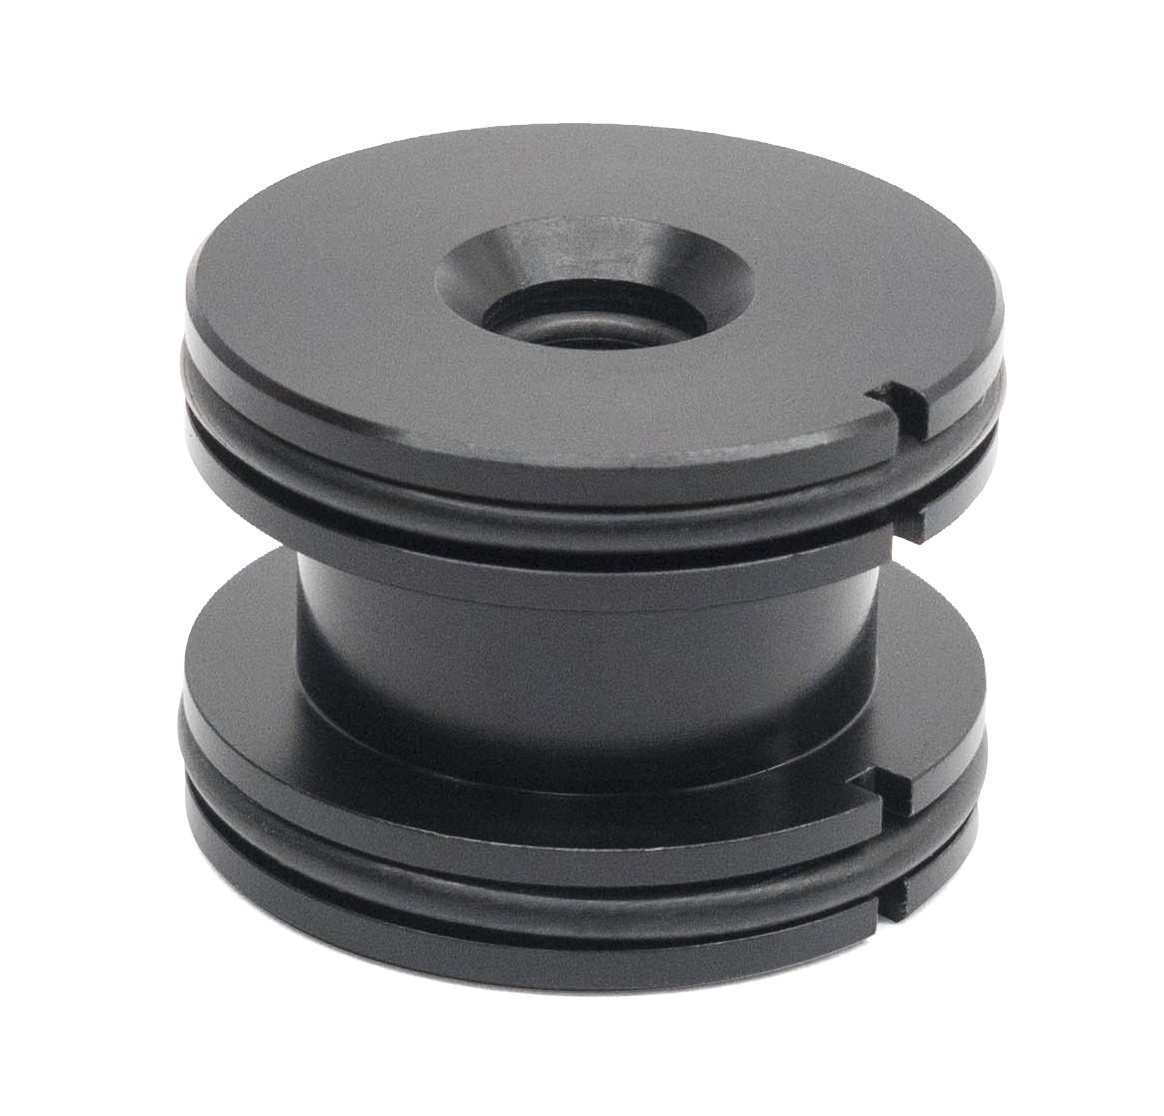 Action Army Action Army Inner Barrel Spacer For Hive Sound Suppressor